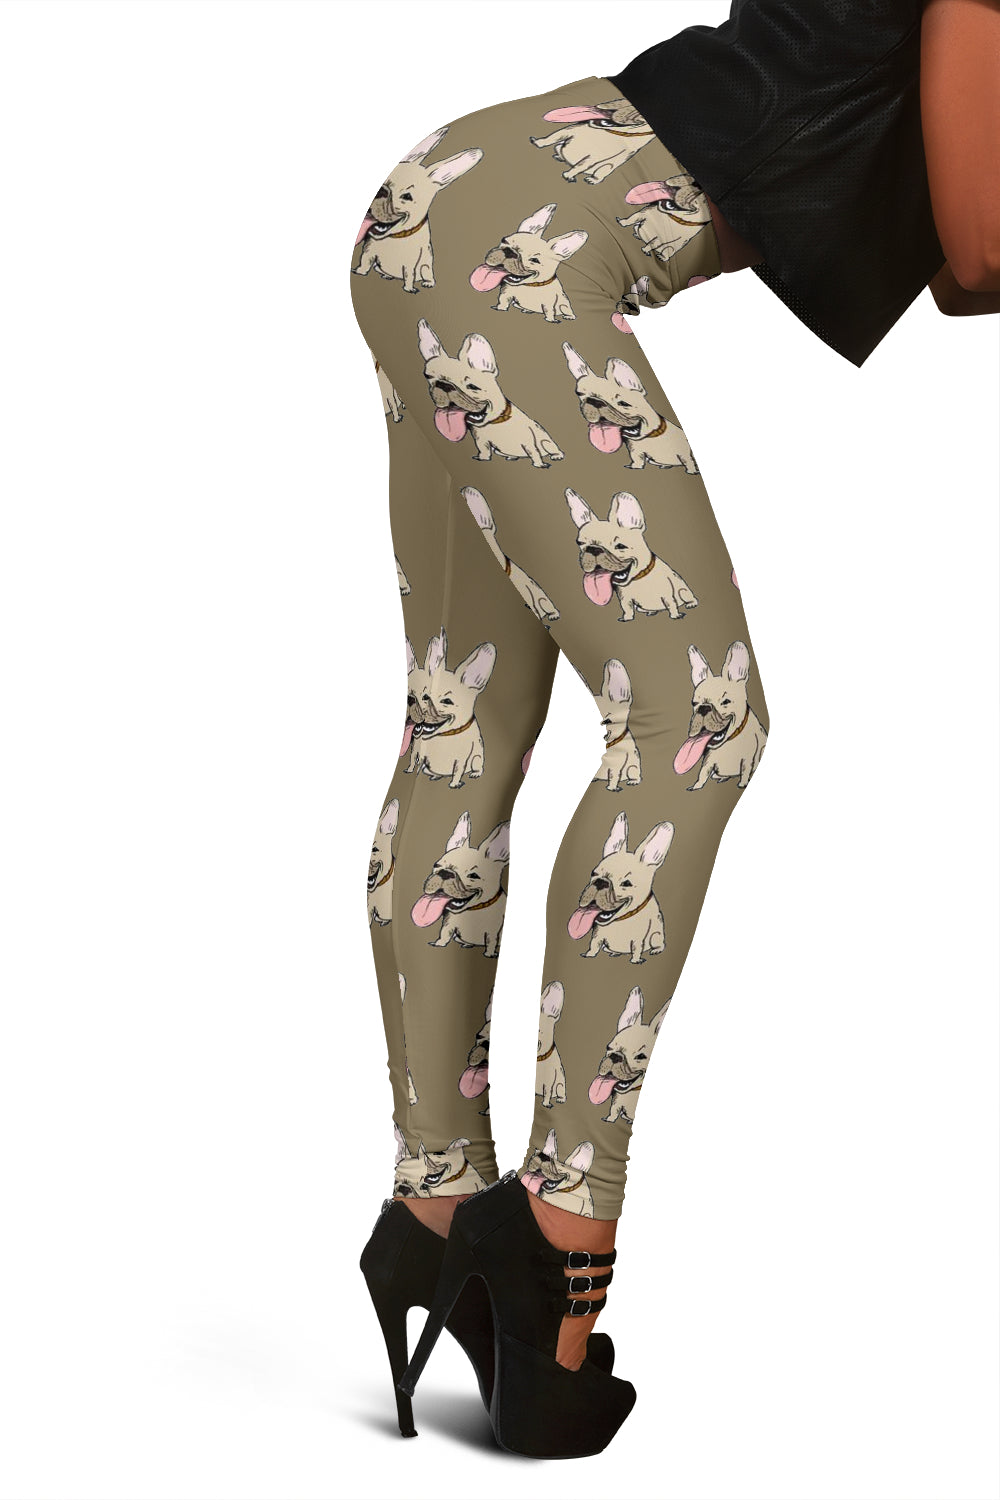 Lucy - Leggings - Frenchie Bulldog Shop